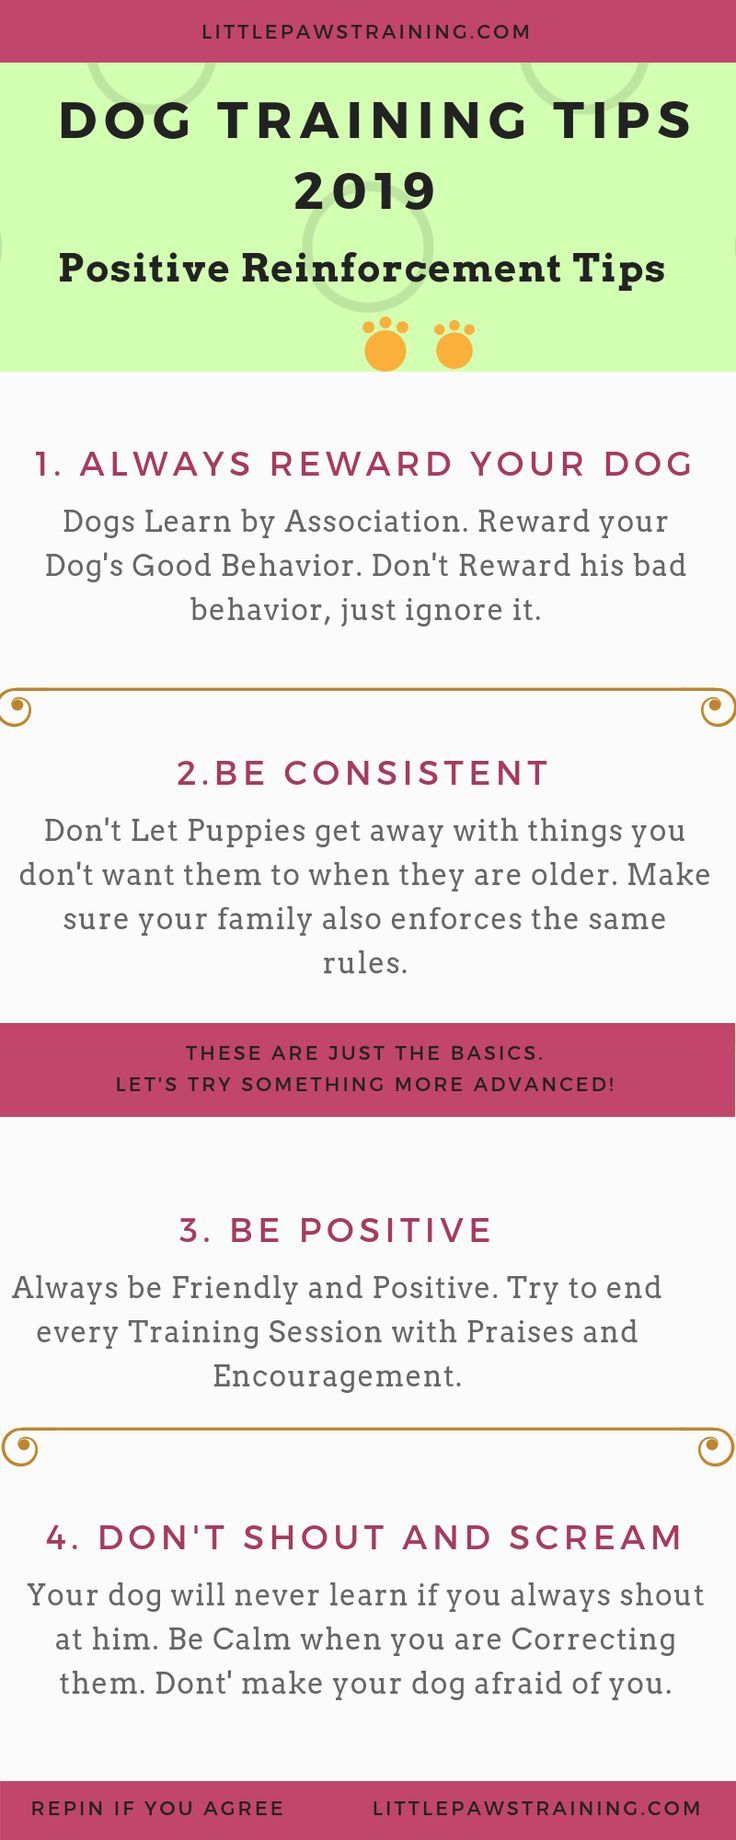 Different Dog Training Tips that you need in 2019 to